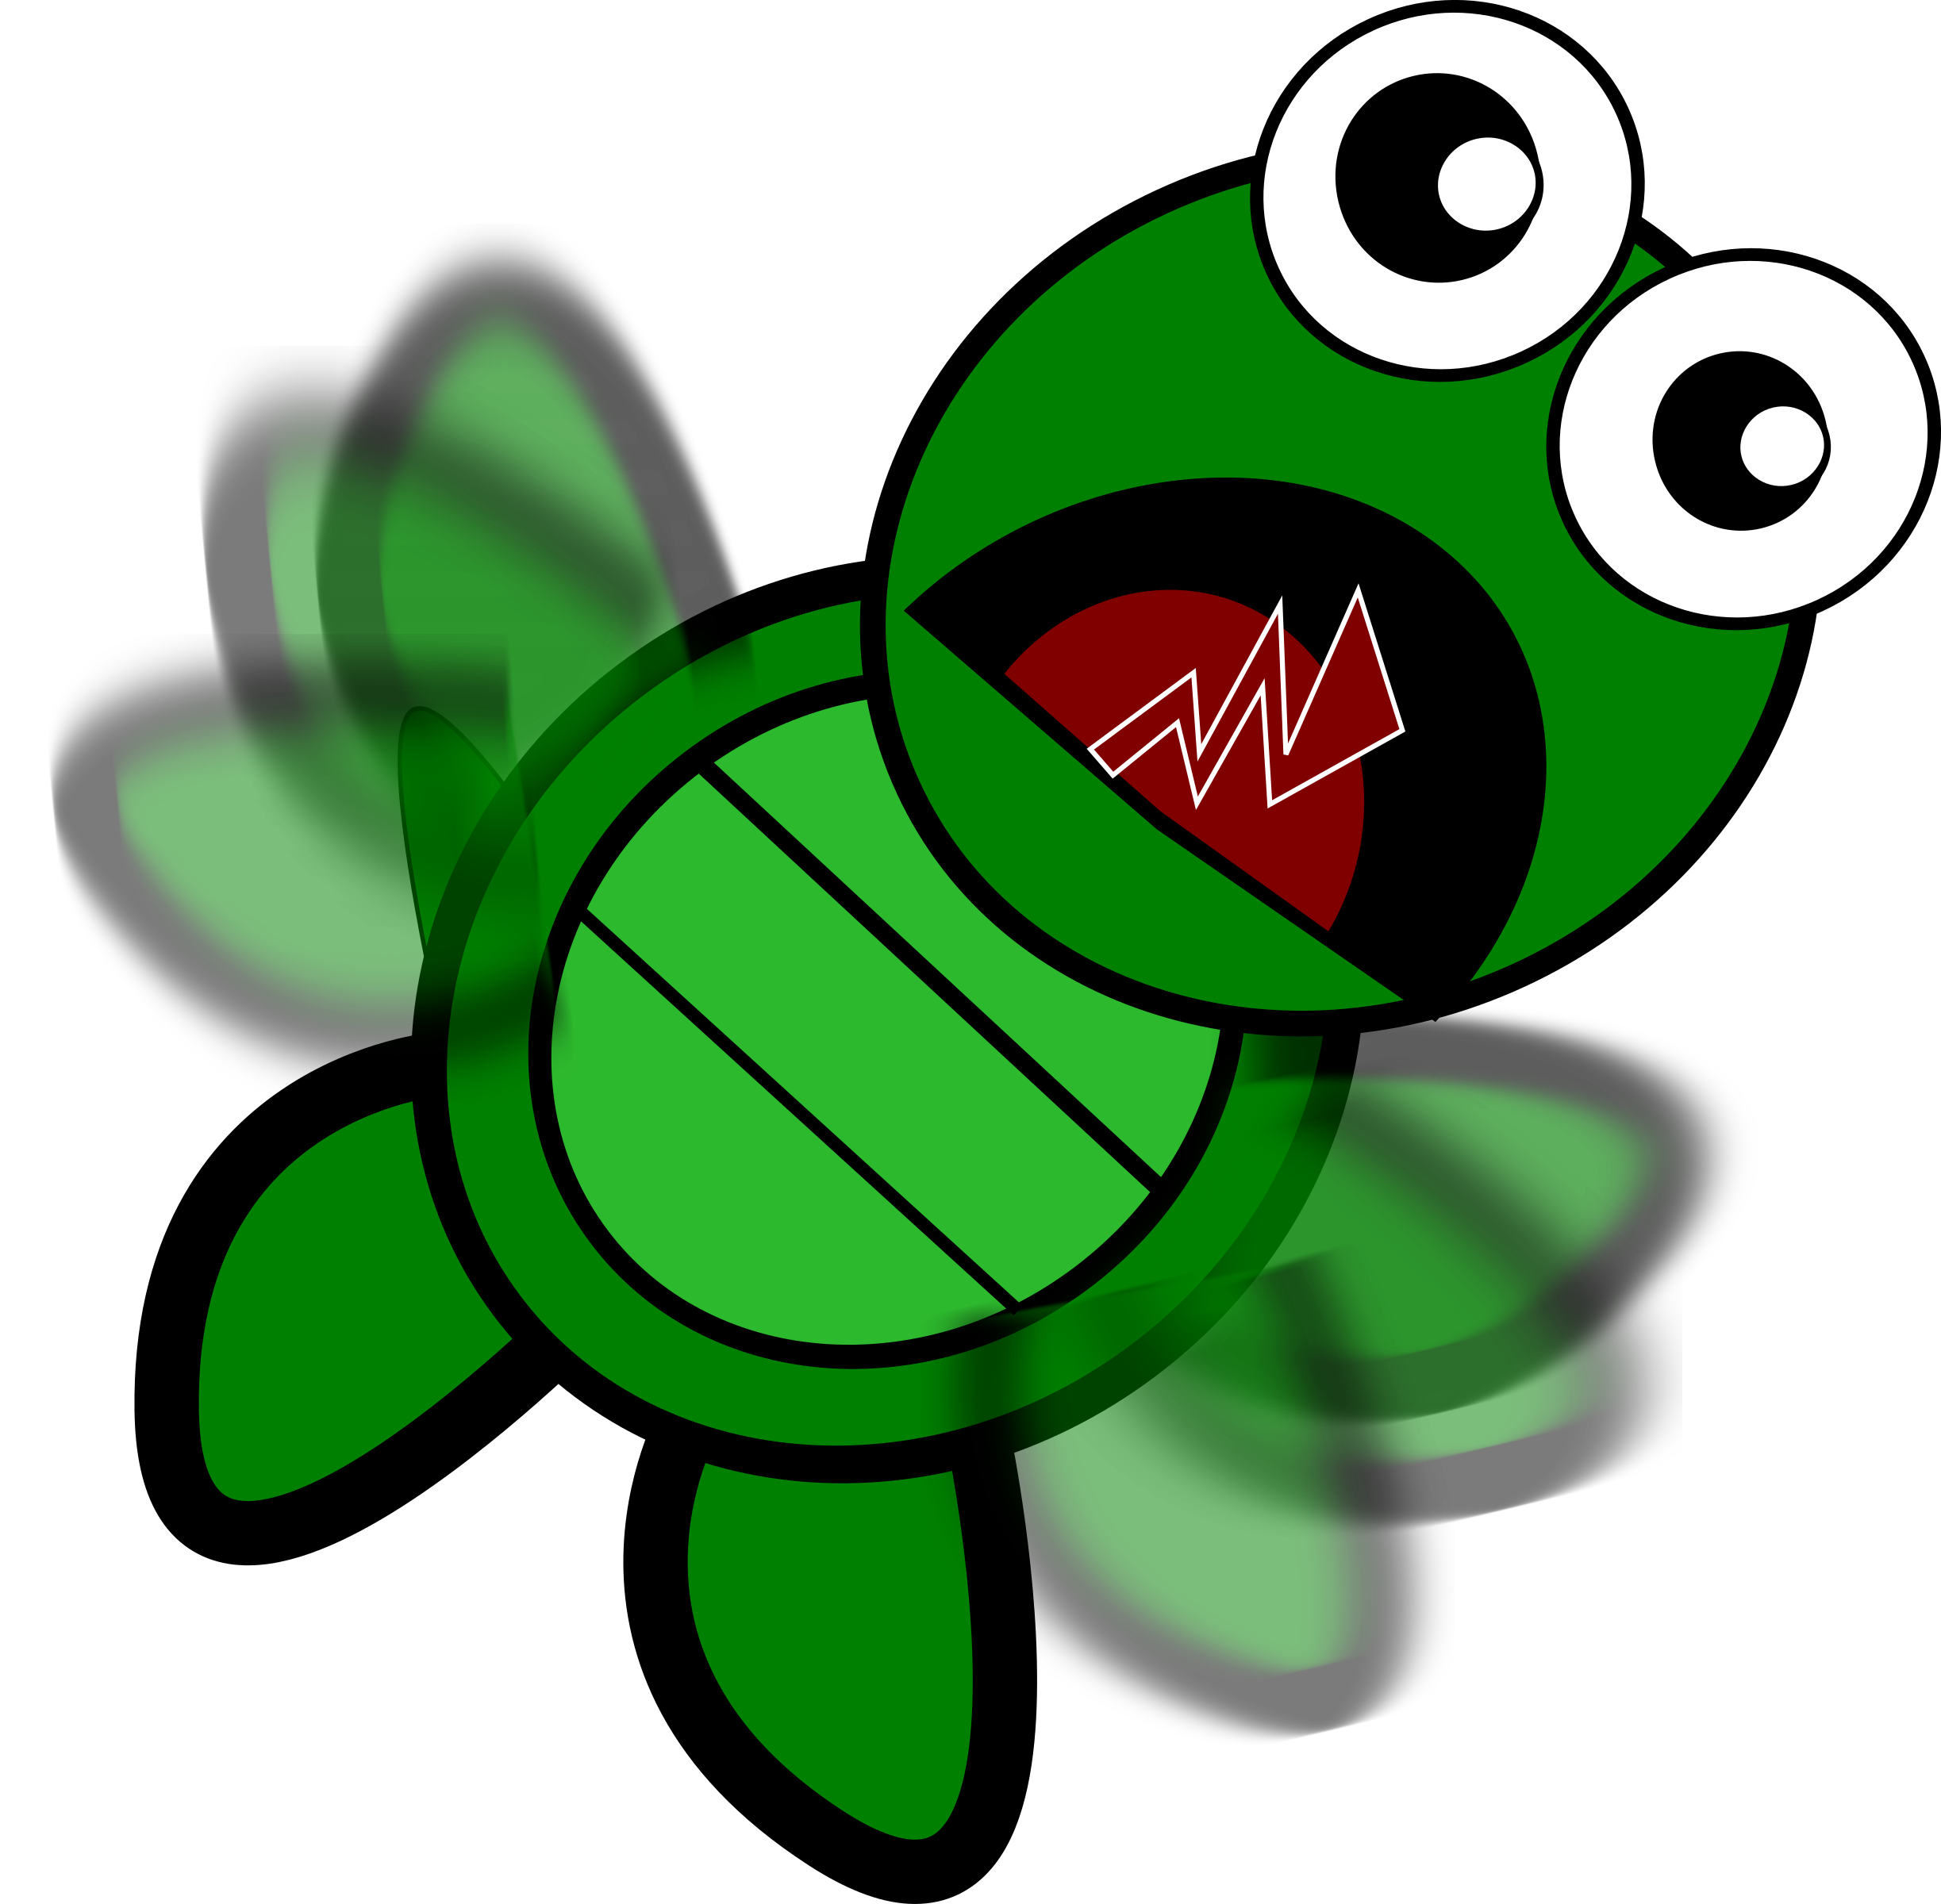 Turtle-Flapping by feraliminal